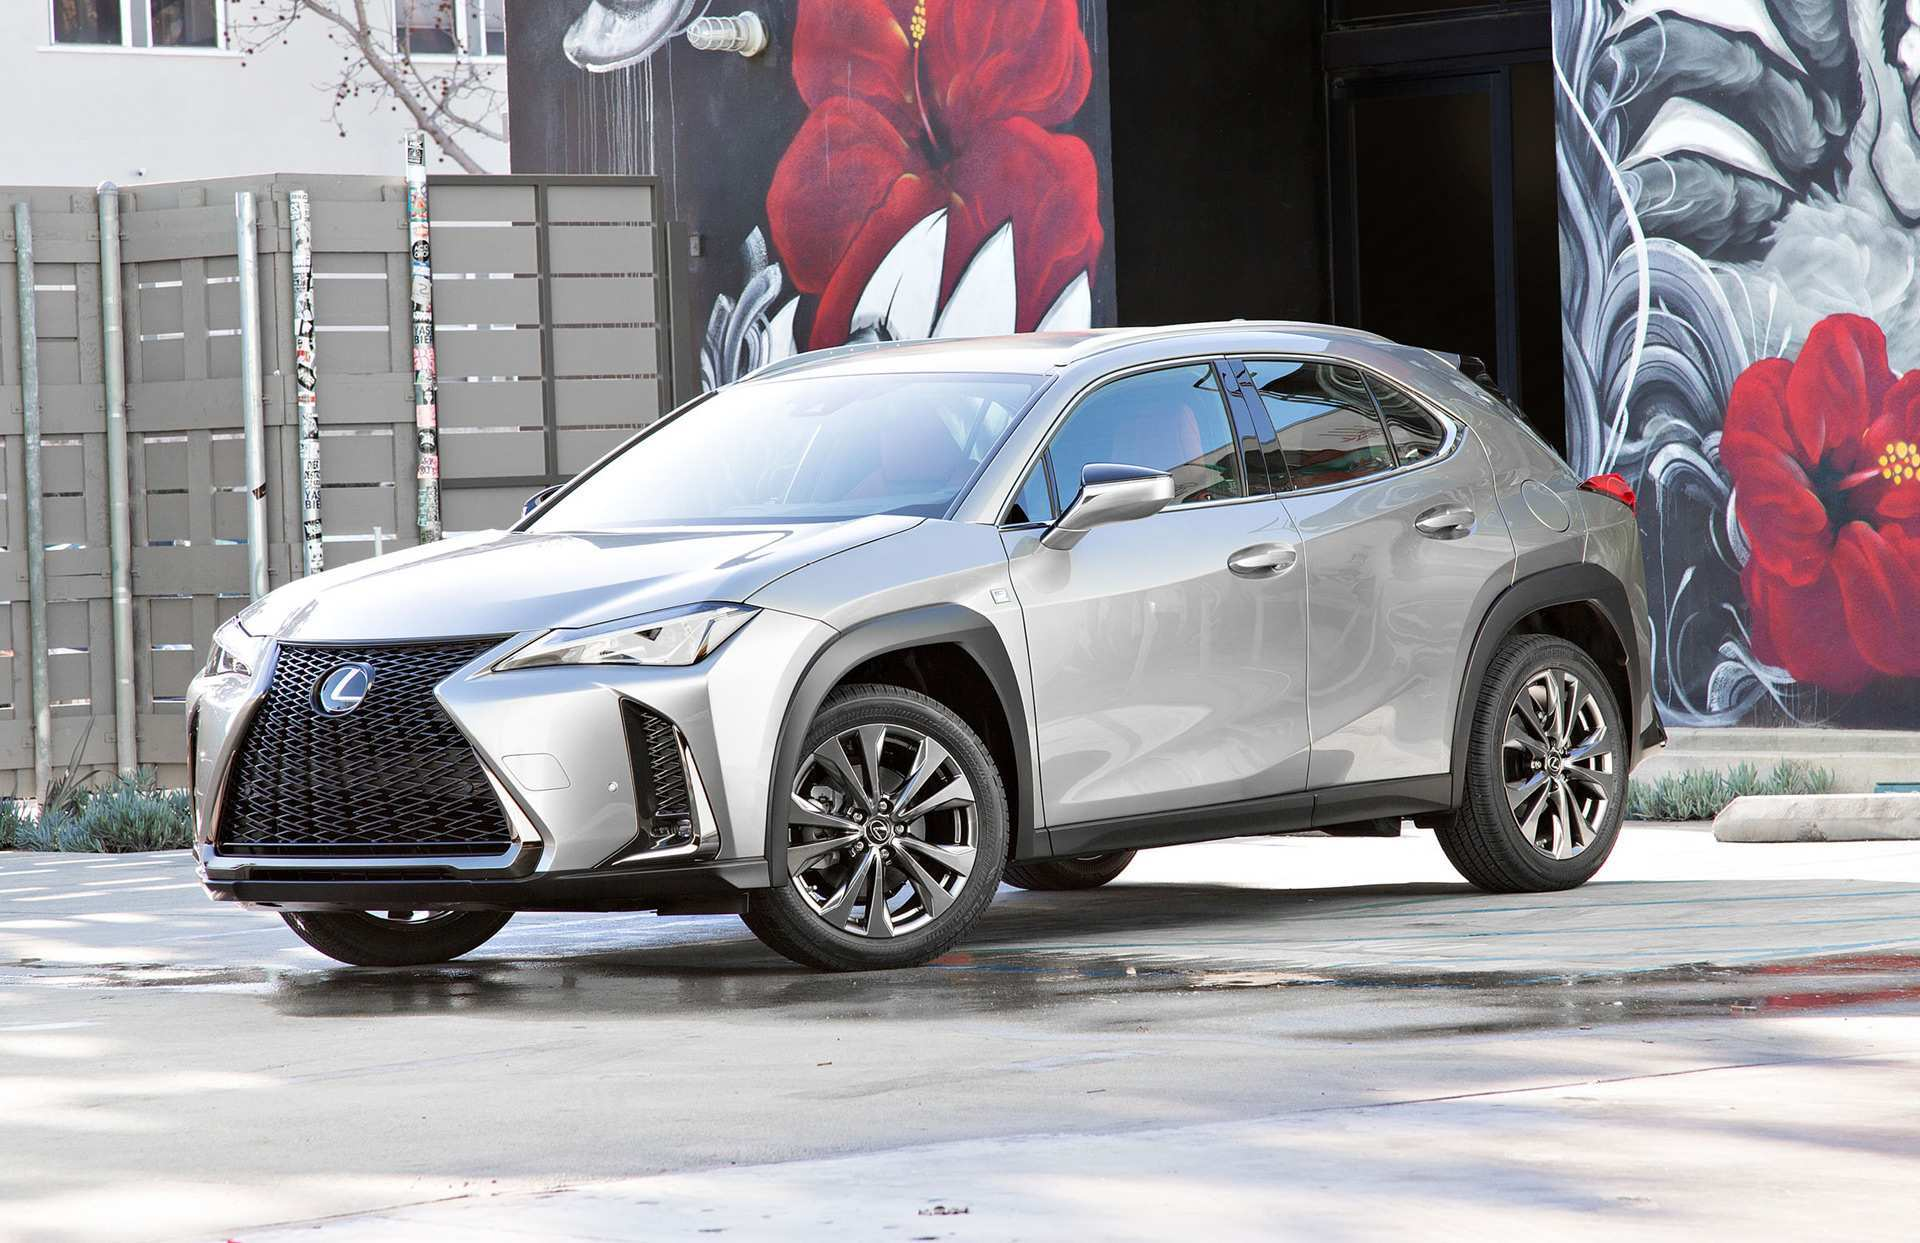 94 Concept of Lexus Ux 2019 Price 2 Pricing with Lexus Ux 2019 Price 2